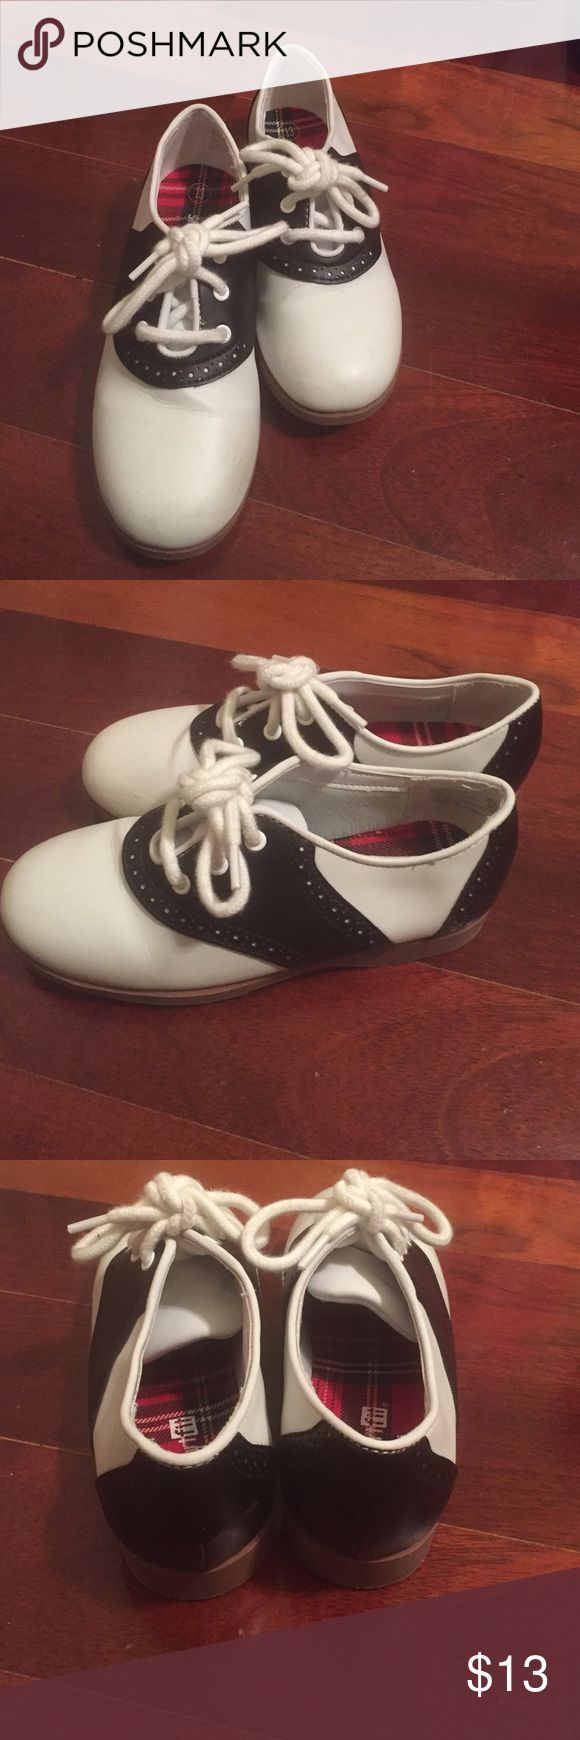 Early BFS🎉Smartfit Saddle Oxfords Excellent Cond. Smartfit Saddle Oxfords Excellent Condition worn 2x for a singing performance shows smartfit Shoes Sneakers